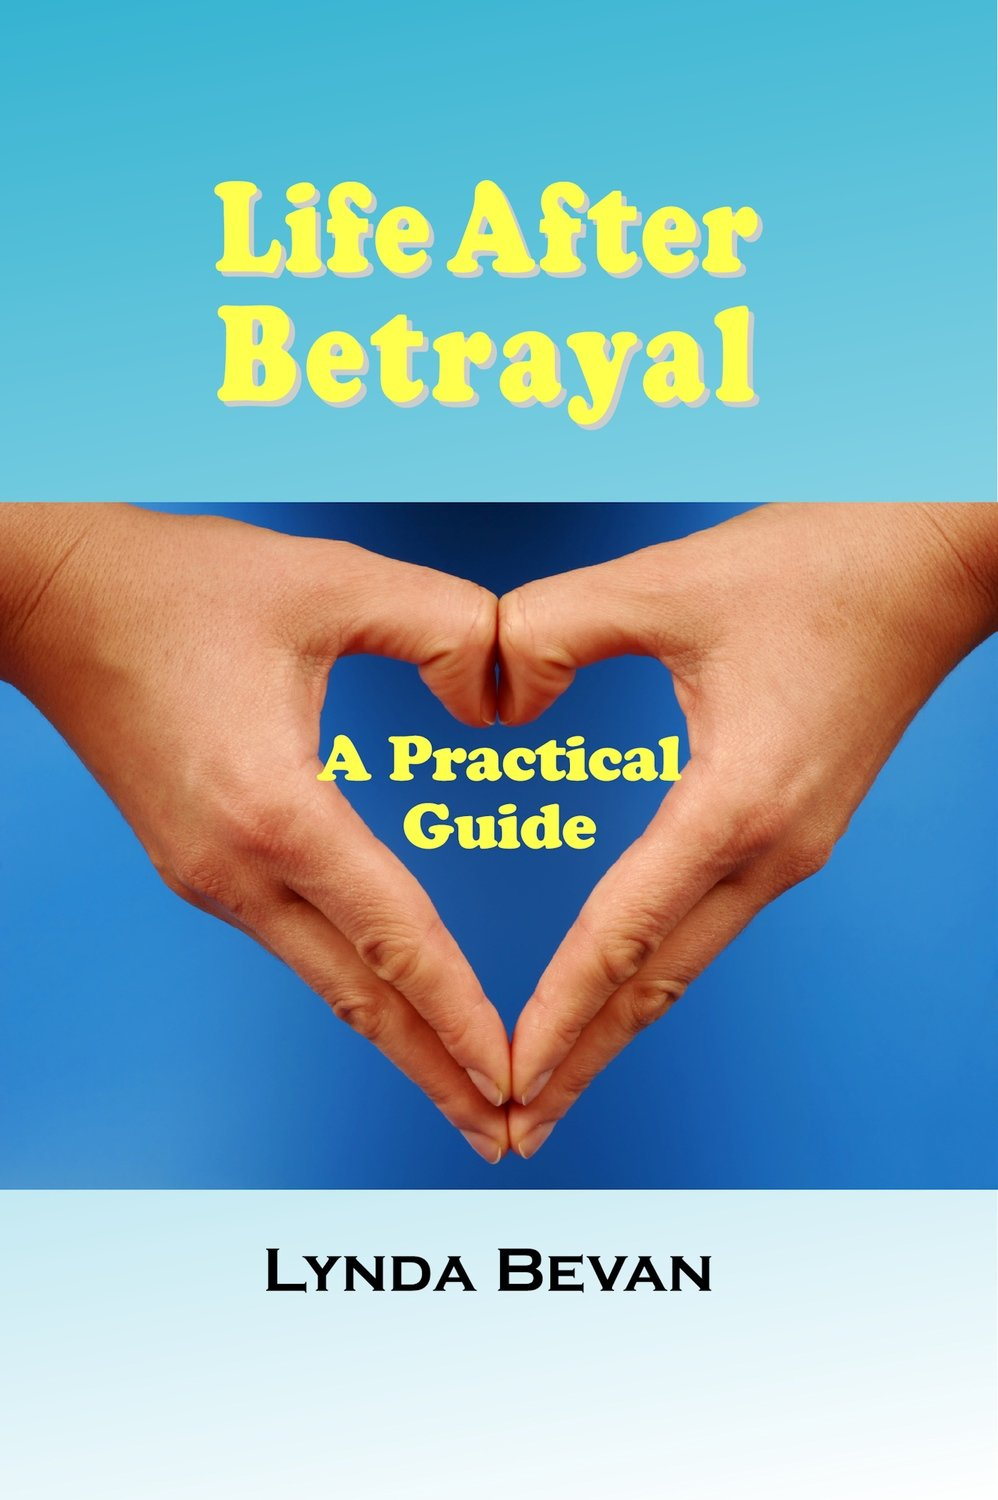 Life After Betrayal: A Practical Guide